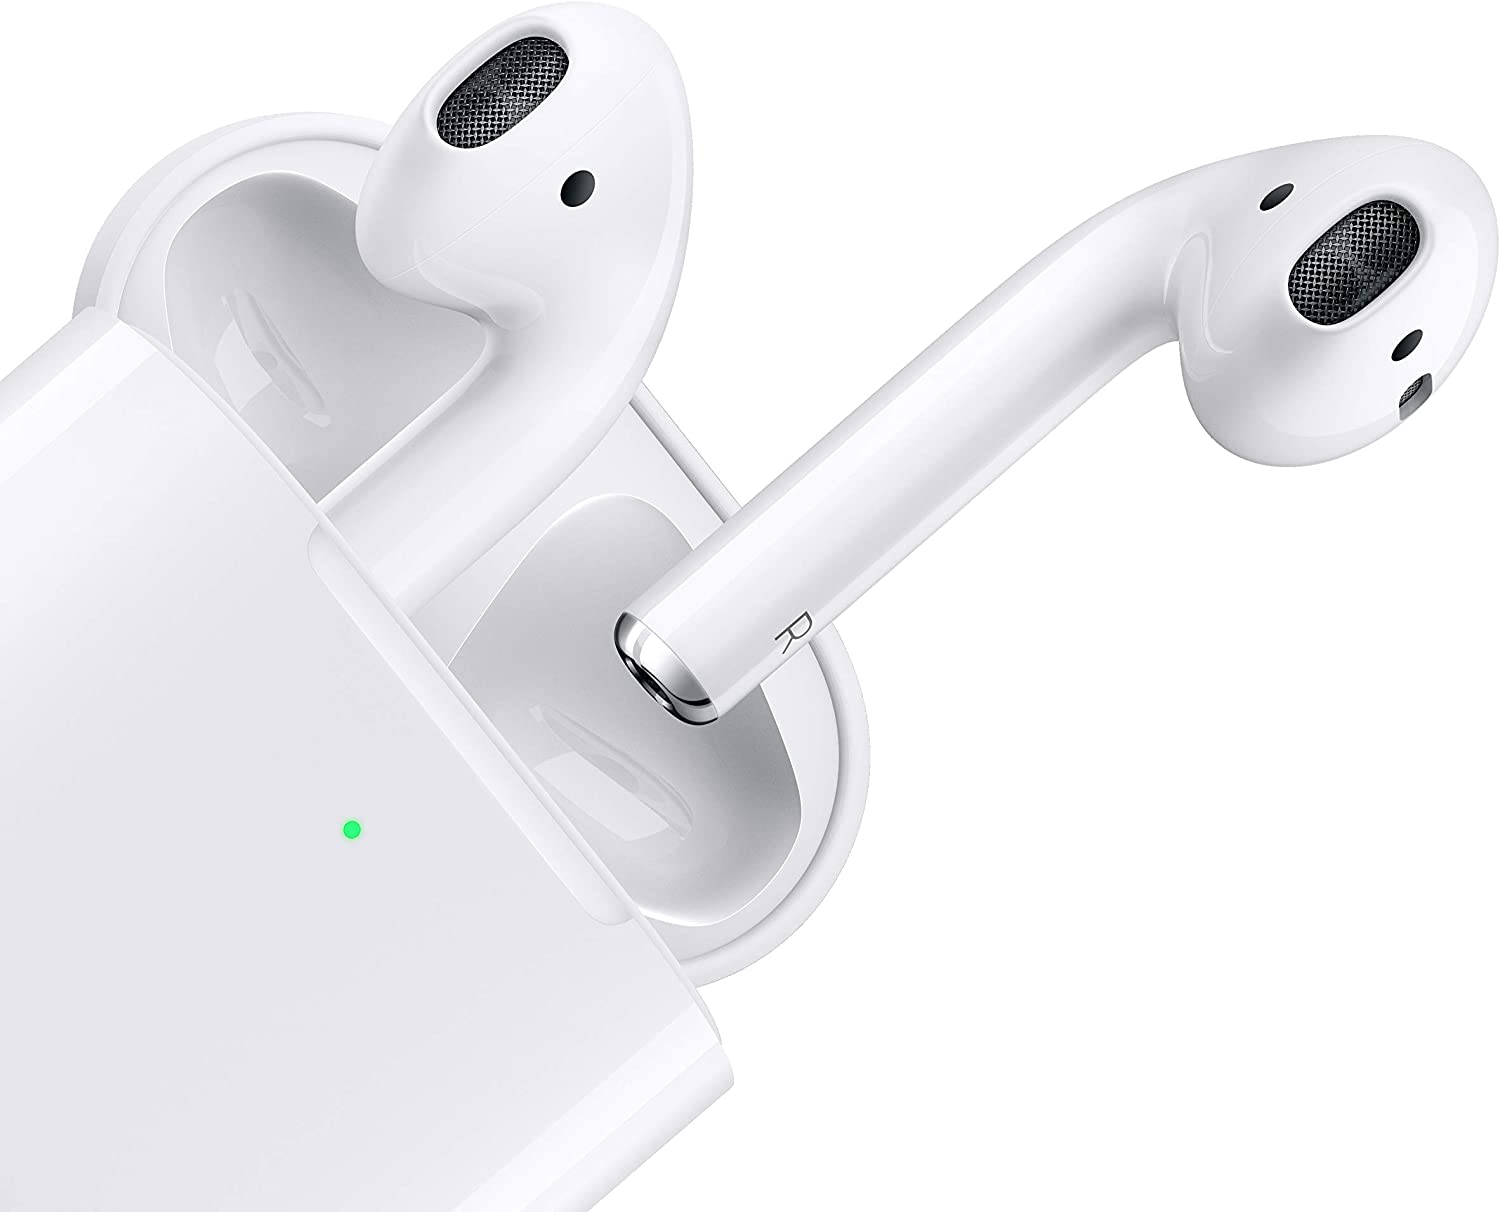 AirPods with Wireless Charging Case エアポッズワイヤレスキャリングケース